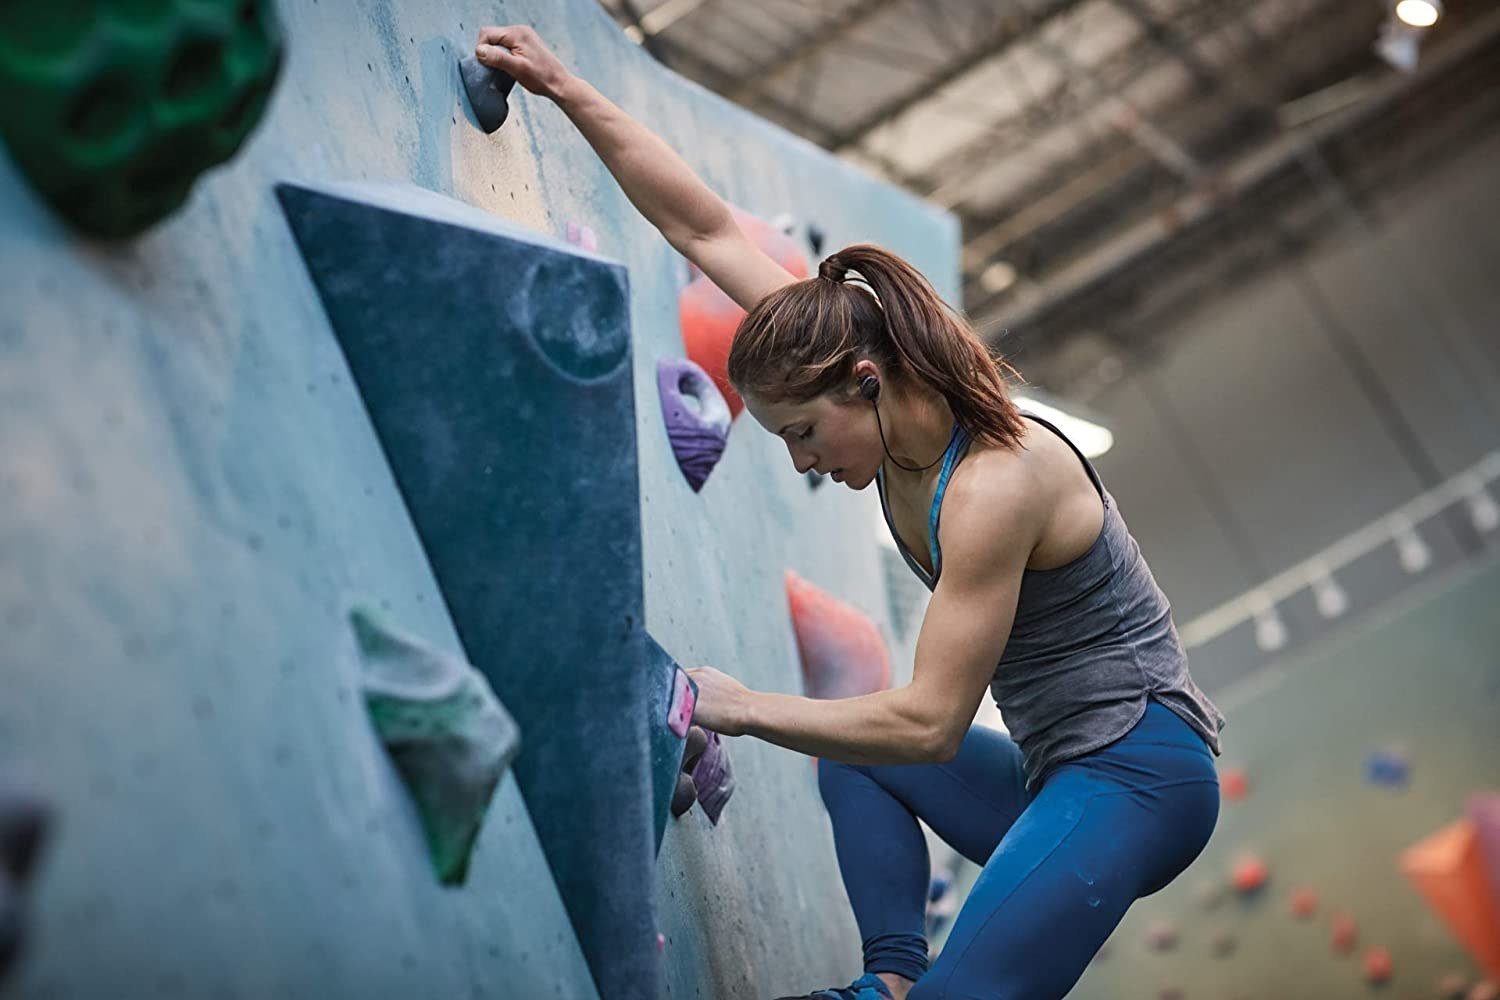 A person rock climbing while wearing headphones